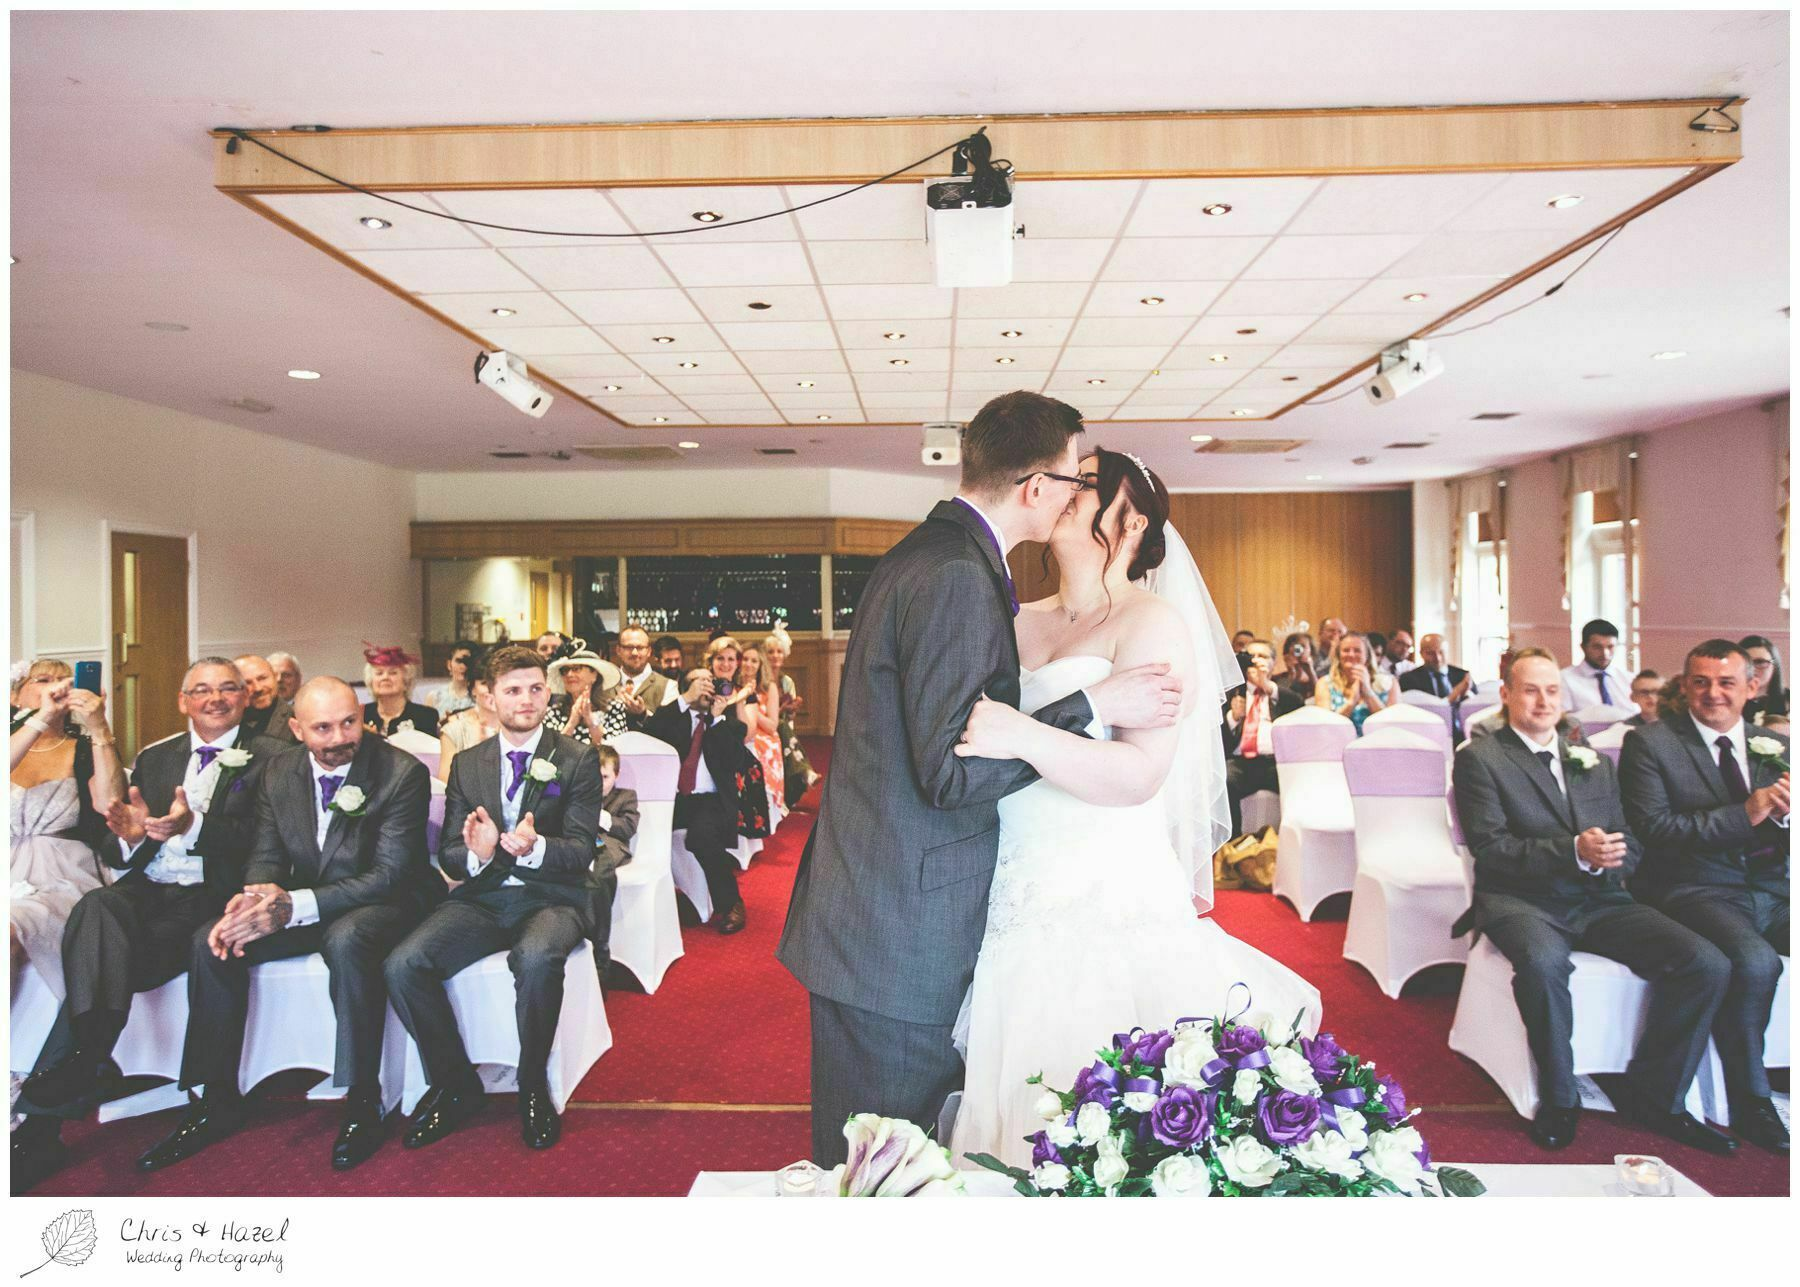 first kiss, bagden hall wedding venue, documentary wedding photography, denny dale, huddersfield, Wedding Photographer, Bagden Hall, Wedding Photography, Chris and Hazel Wedding Photography, Alex tomenson, Vicky hunt